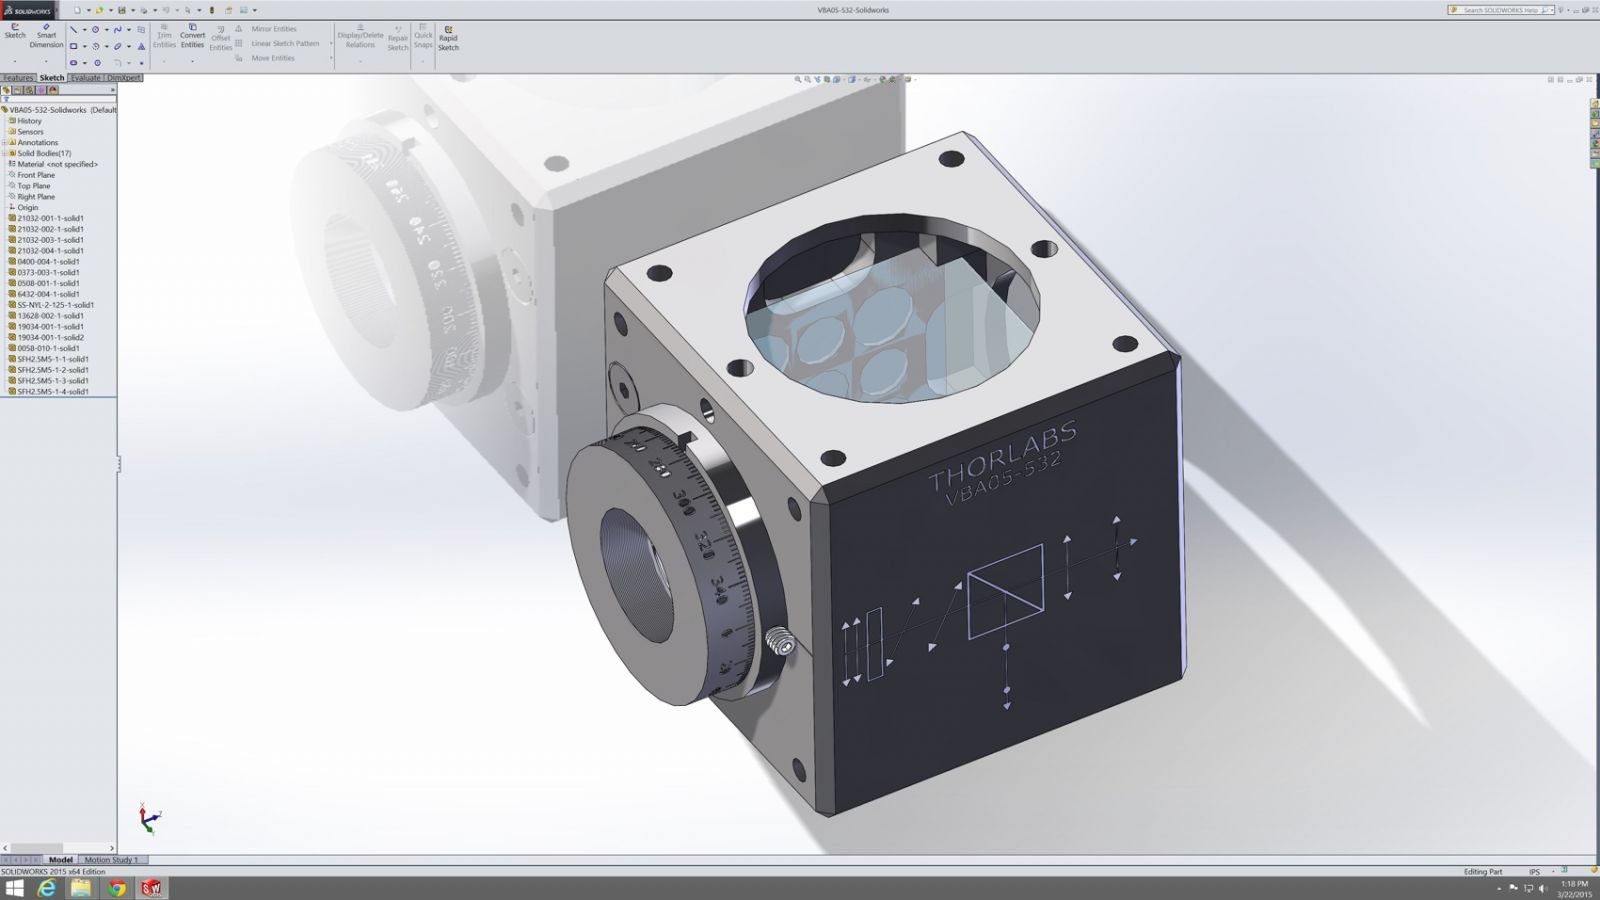 Modeling Software | West Campus Imaging Core